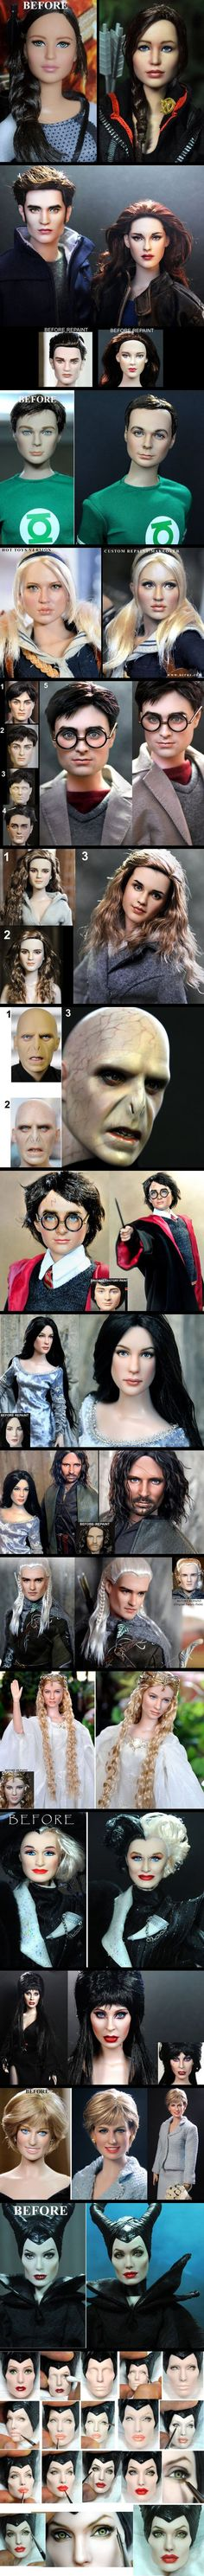 Dolls turned into masterpieces.